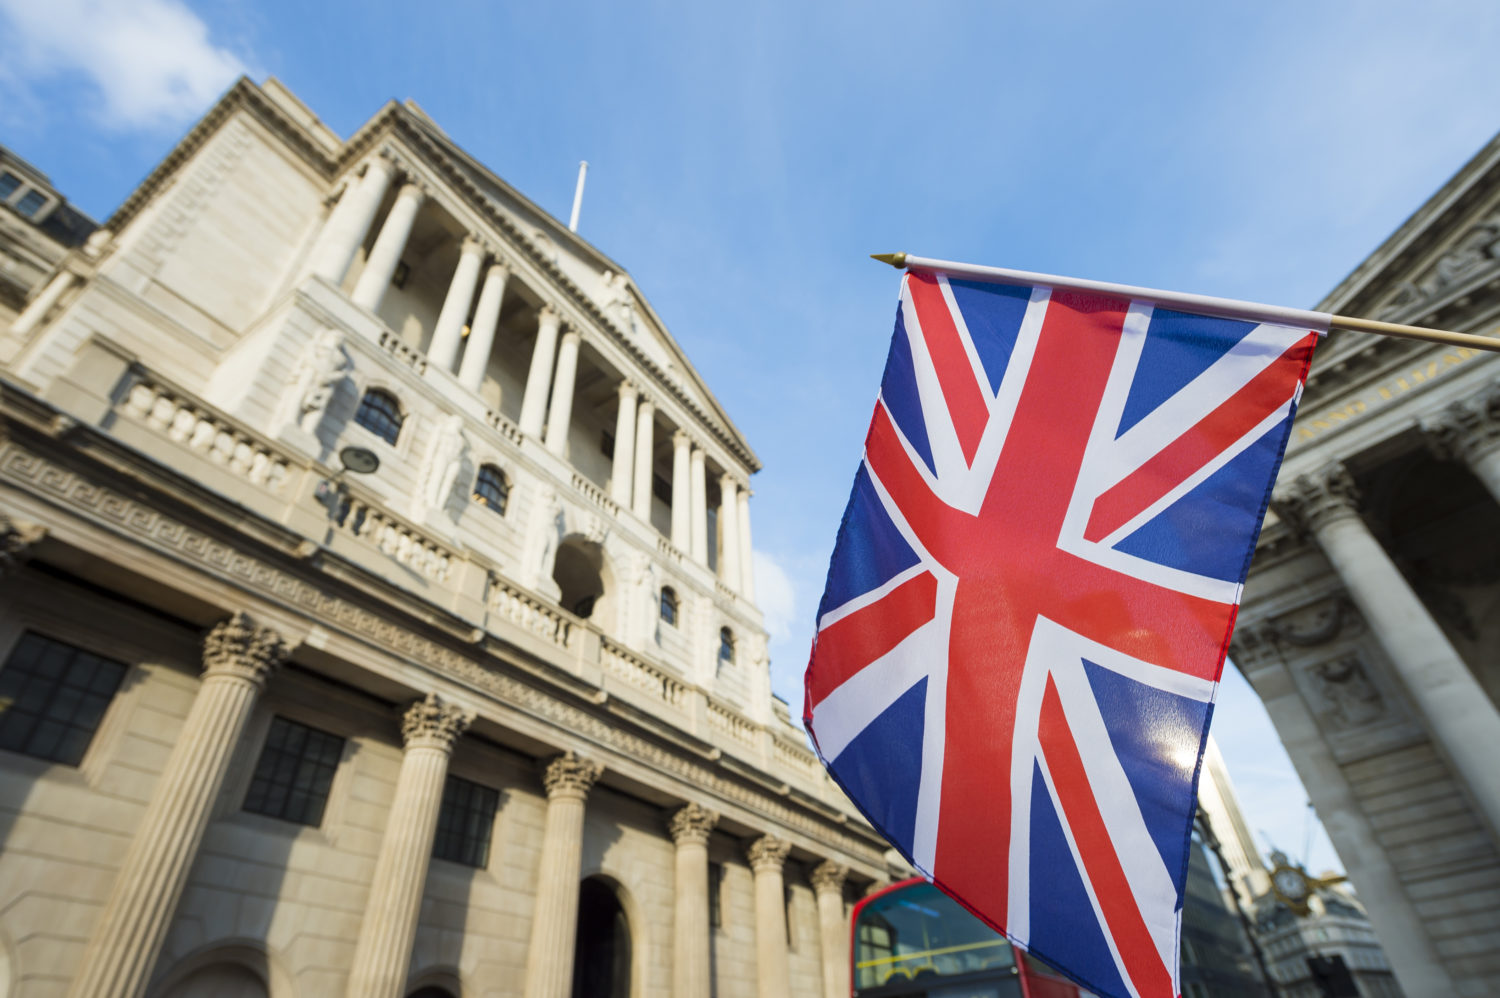 Buy crypto only if ready to lose it all, says Bank of England governor